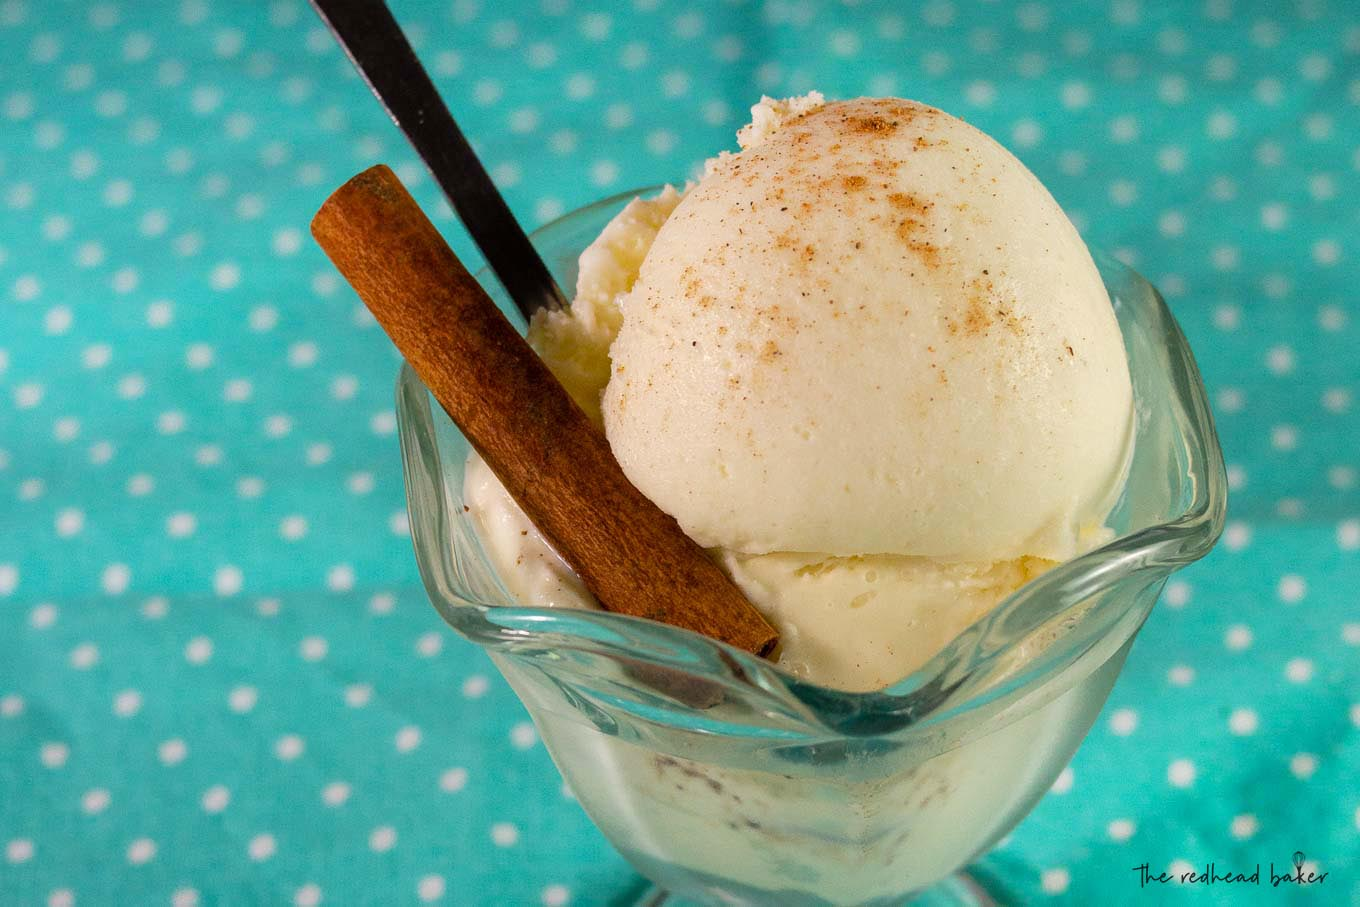 A dish of eggnog gelato with a cinnamon stick and a long ice cream spoon